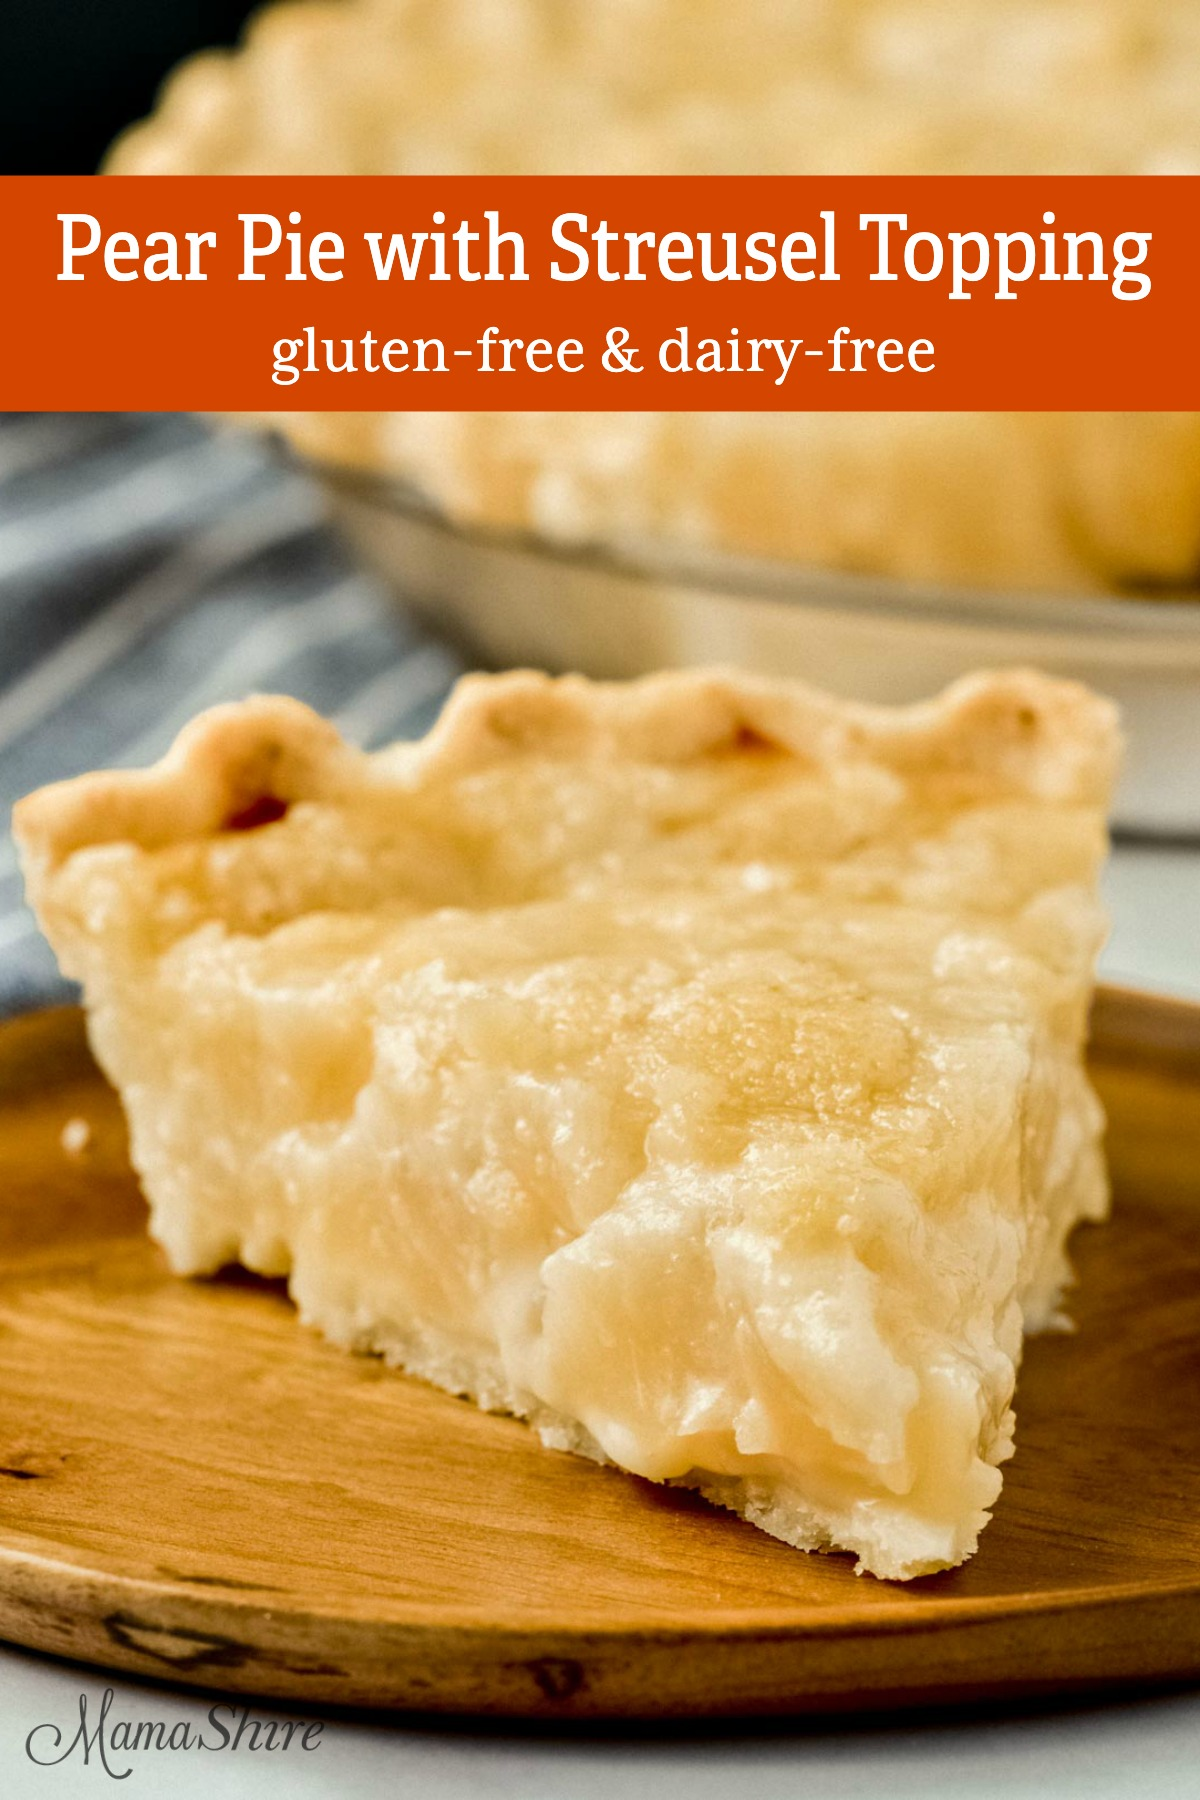 A slice of gluten-free pear pie.